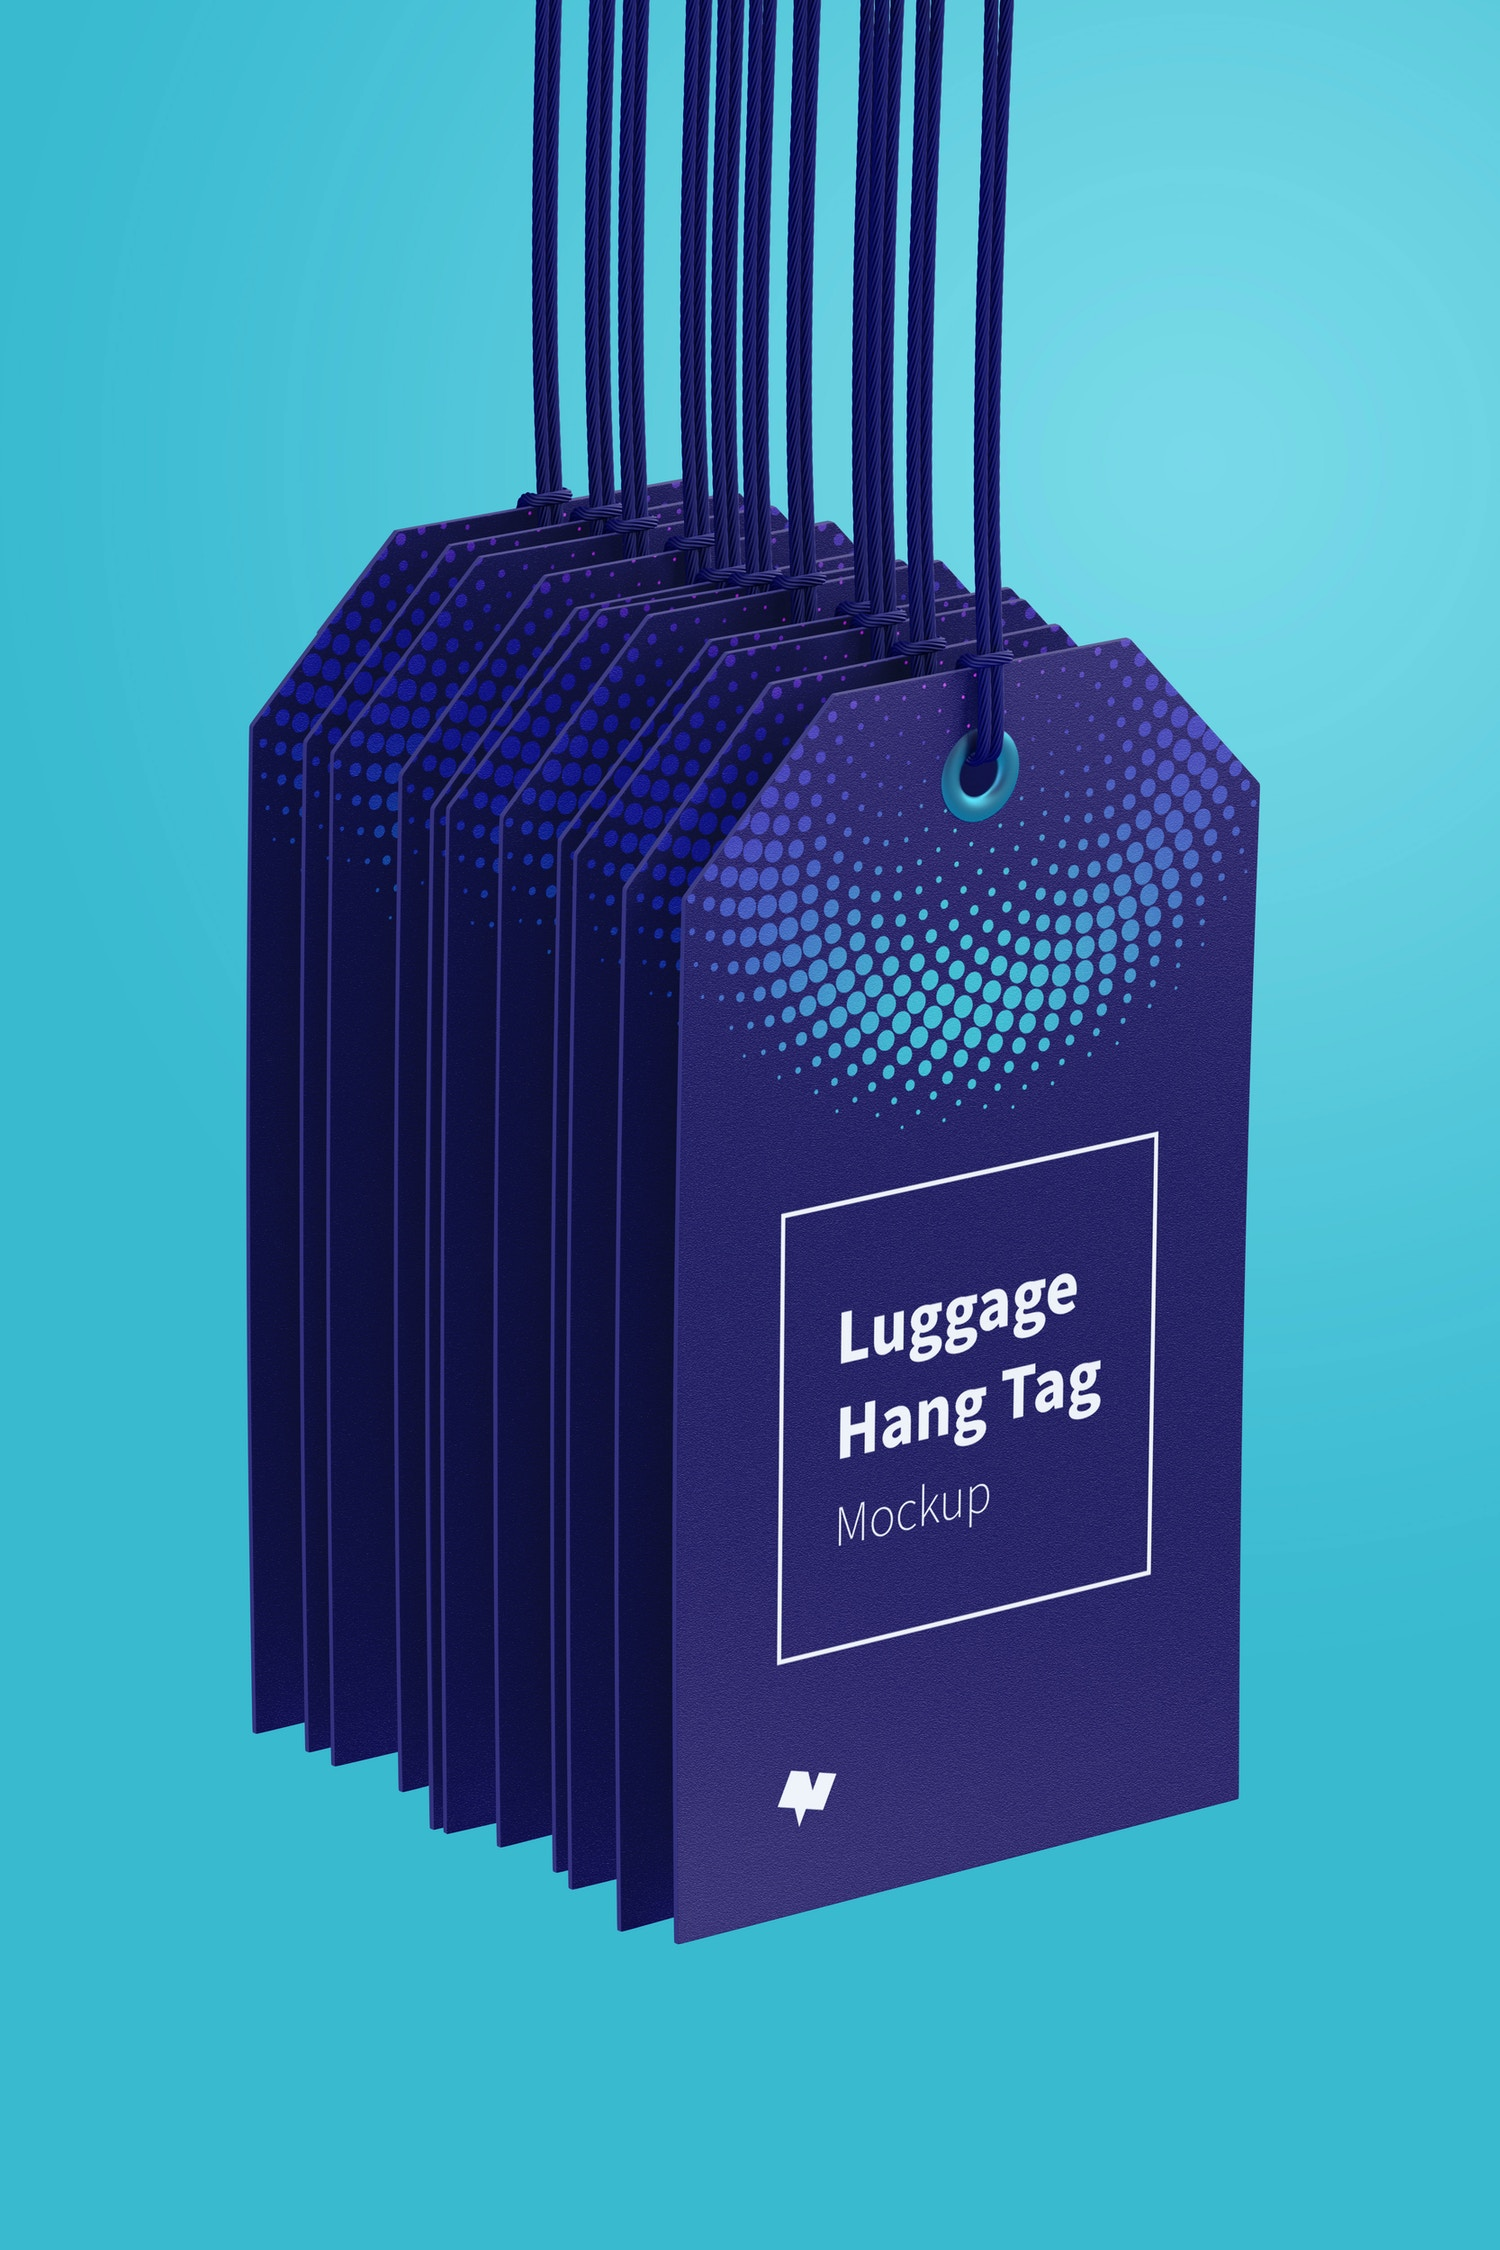 Luggage Hang Tags Mockup with String, Two-sided 04